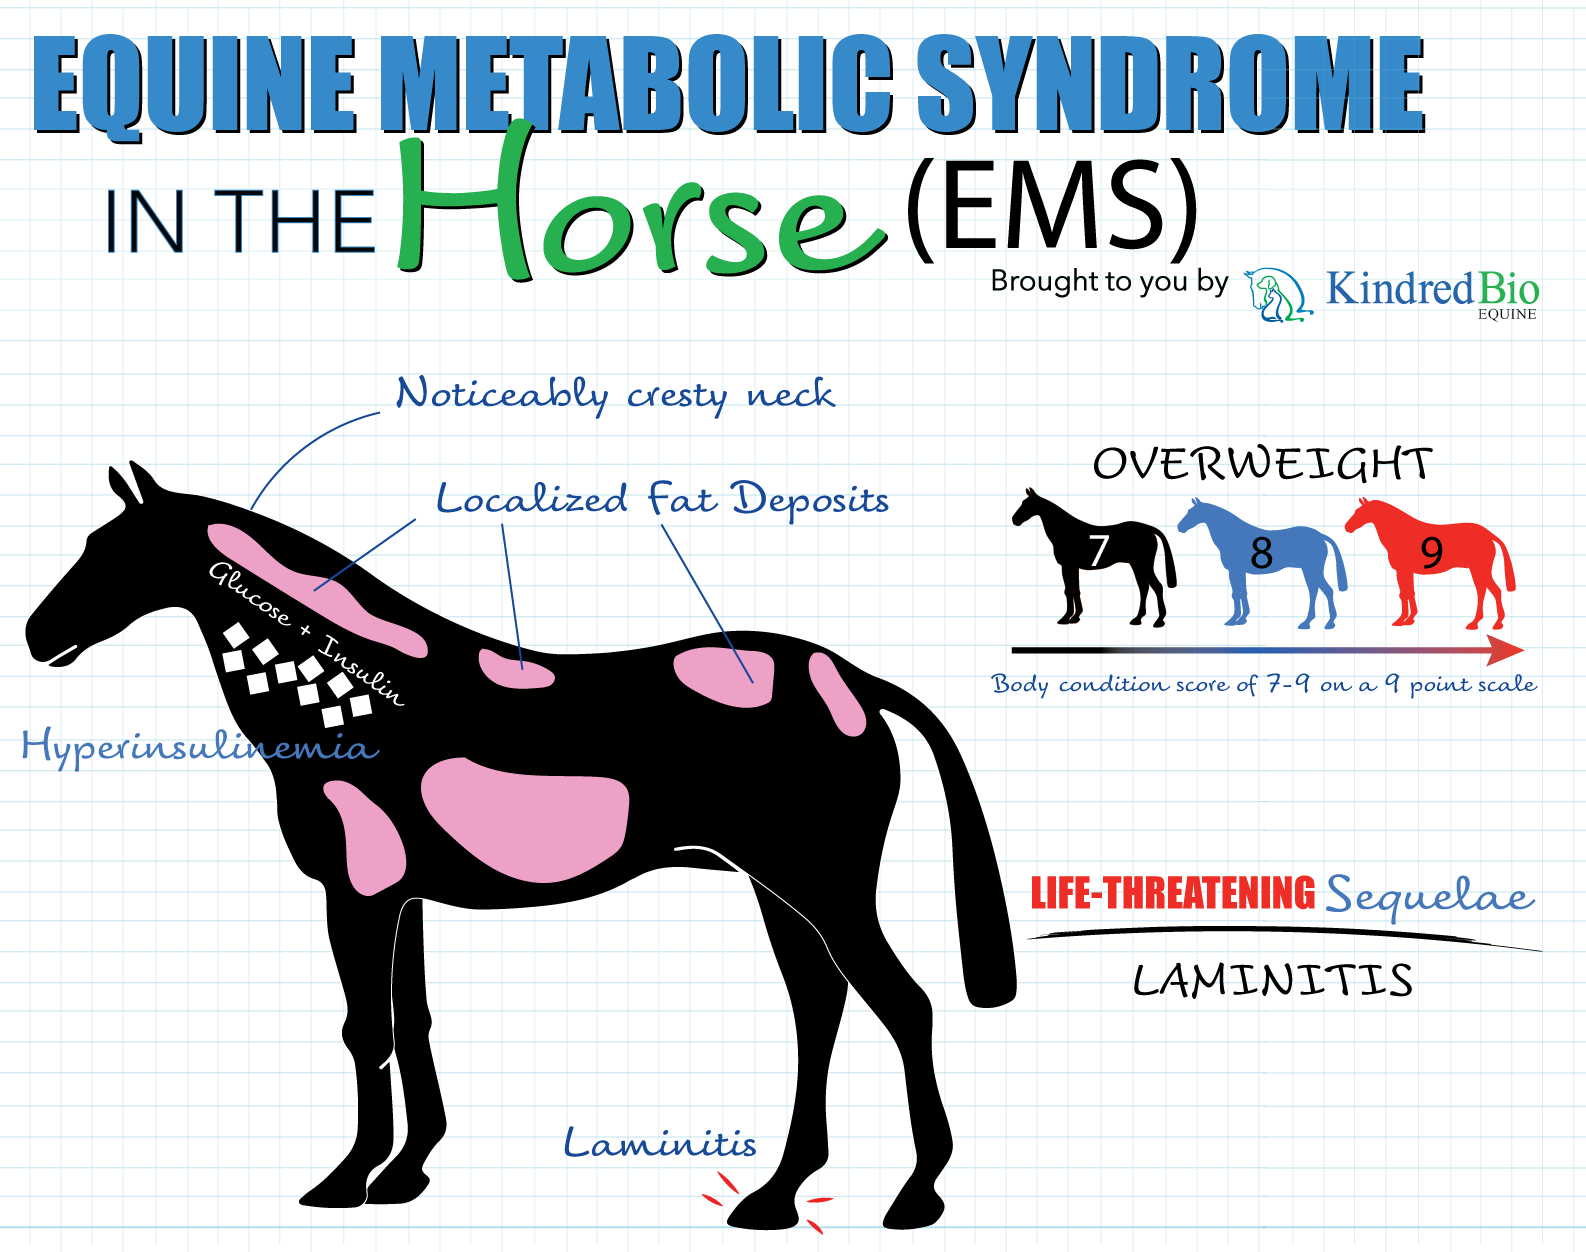 equine metabolic syndrome, egus